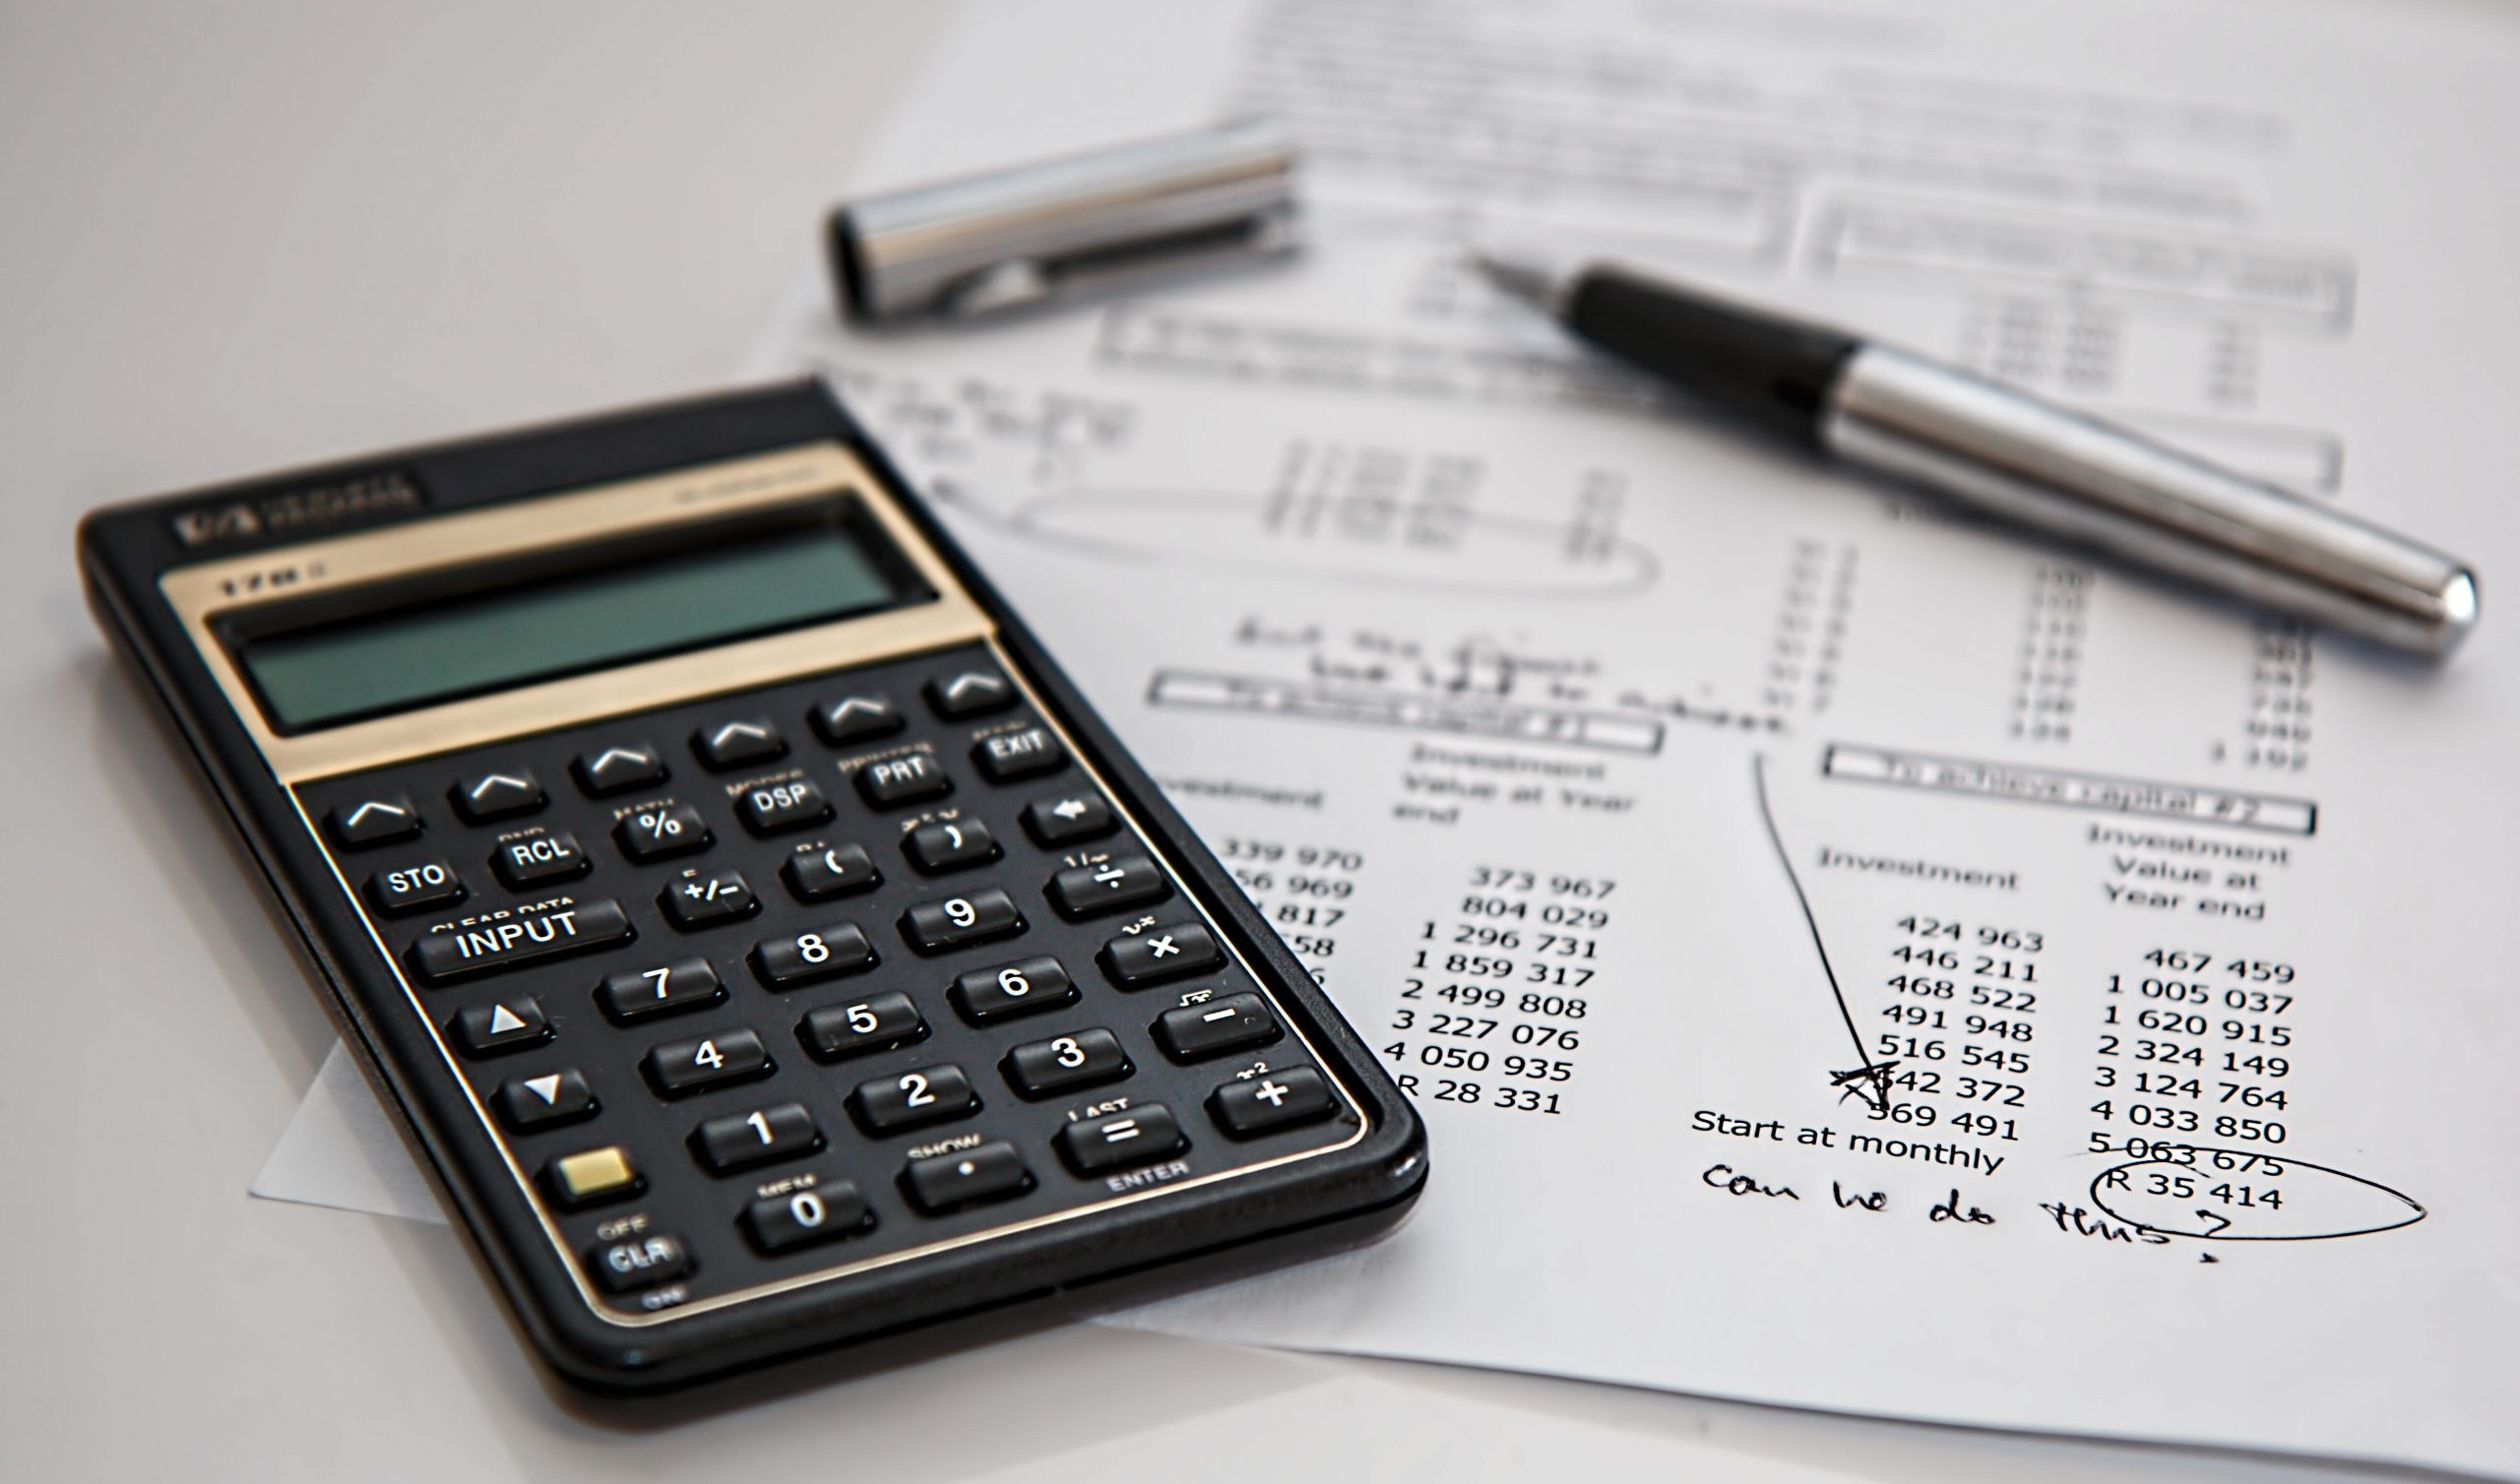 a calculator and spreadsheet for budgeting